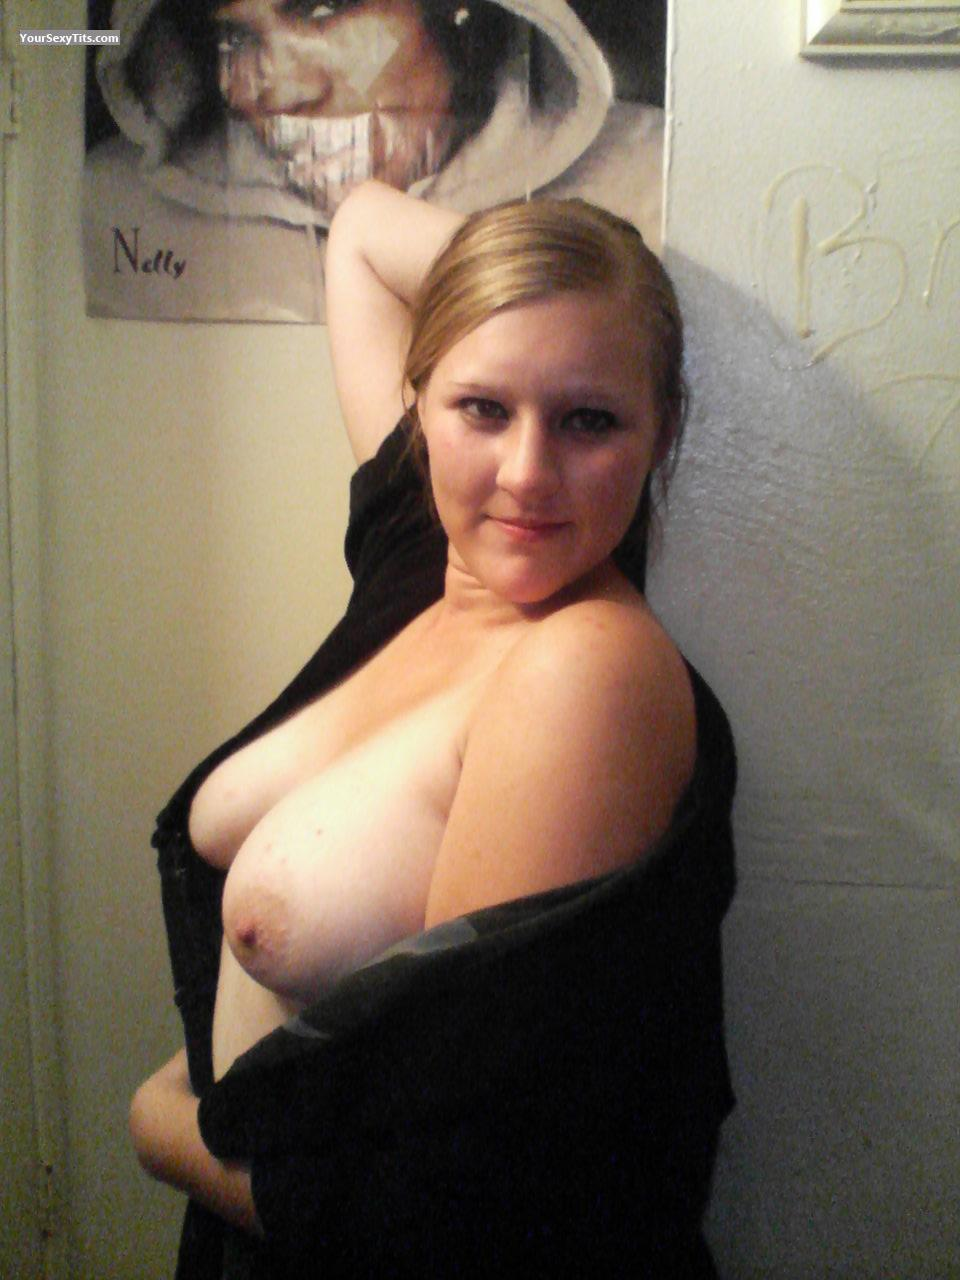 Tit Flash: Big Tits - Topless Amanda from United States